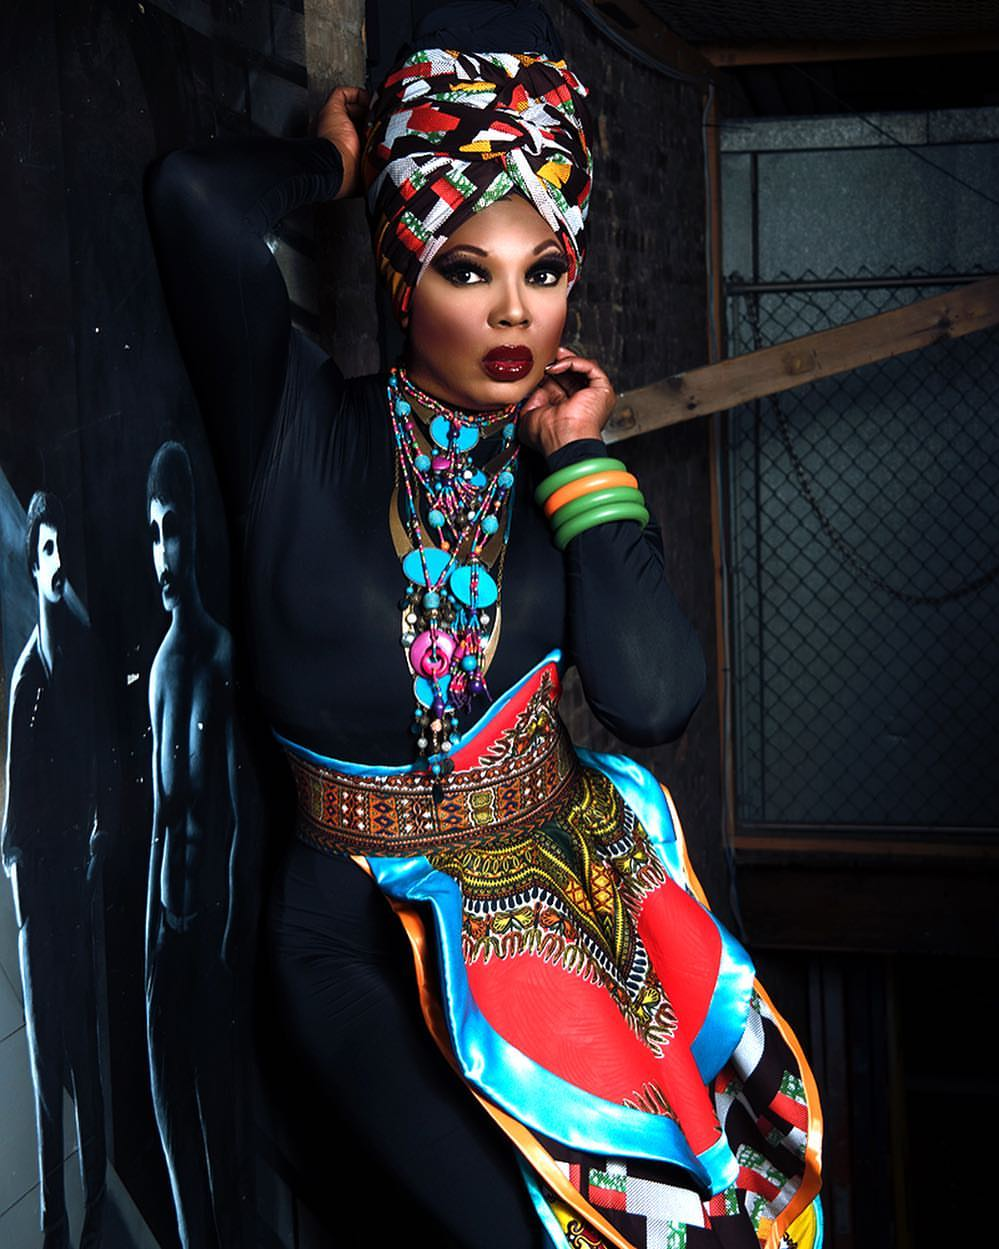 BeBe Zahara Benet - Photo by Dennis Driscoll